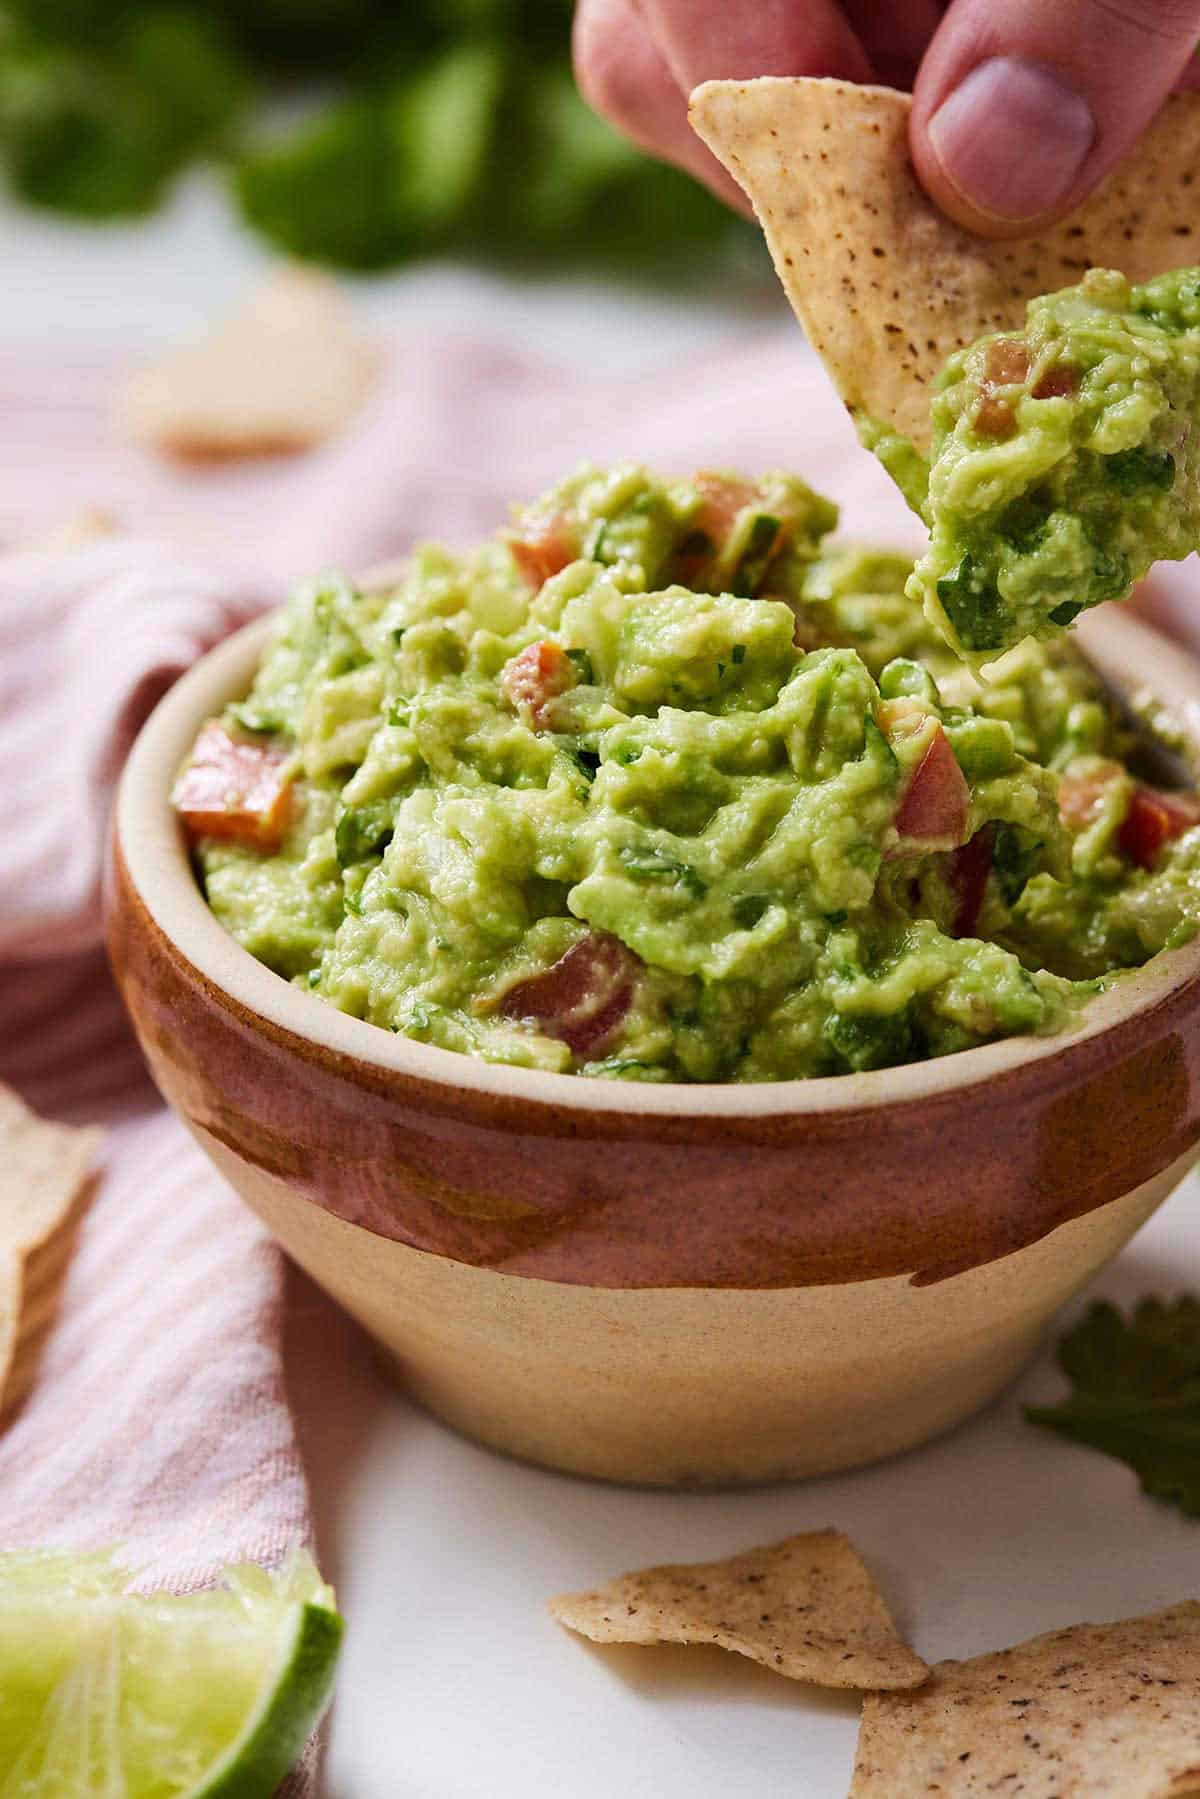 A bowl of guacamole with a tortilla chip scooping some out.